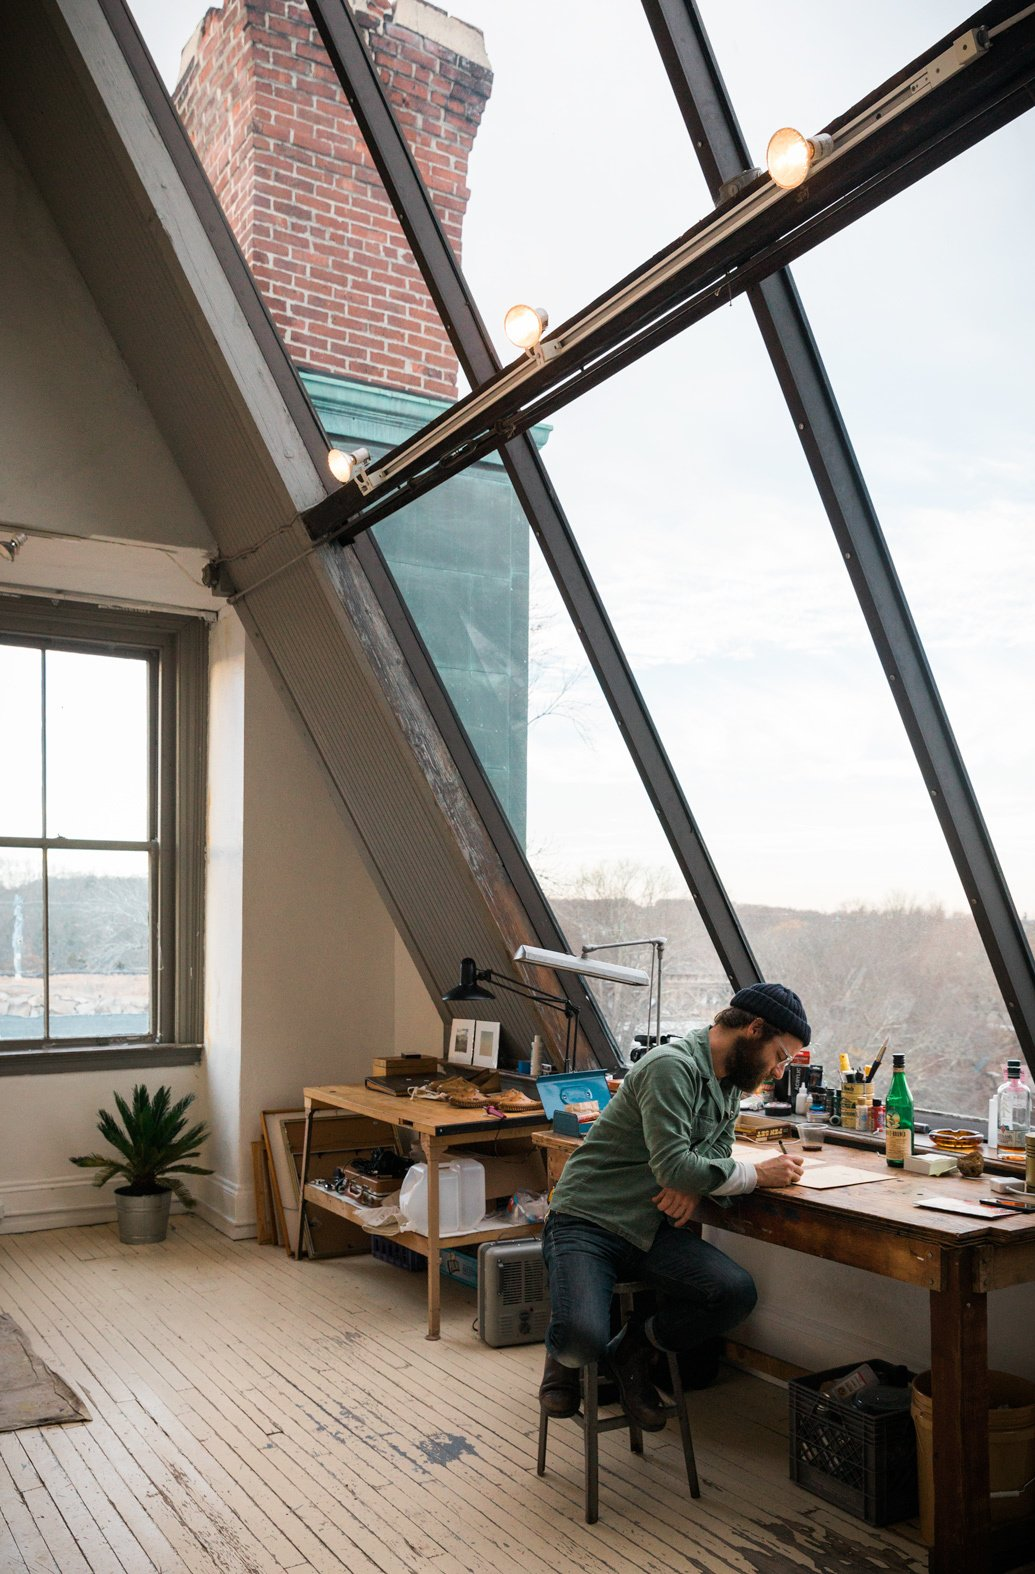 Office, Lamps, Chair, Painted Wood Floor, Craft Room Room Type, and Desk When asked what's next in the works, Spellman describes how he's working on an upcoming music festival and concert series called Westerly Sound.  Photo 10 of 10 in This Stunning Studio in Rhode Island Is a Creative's Dream